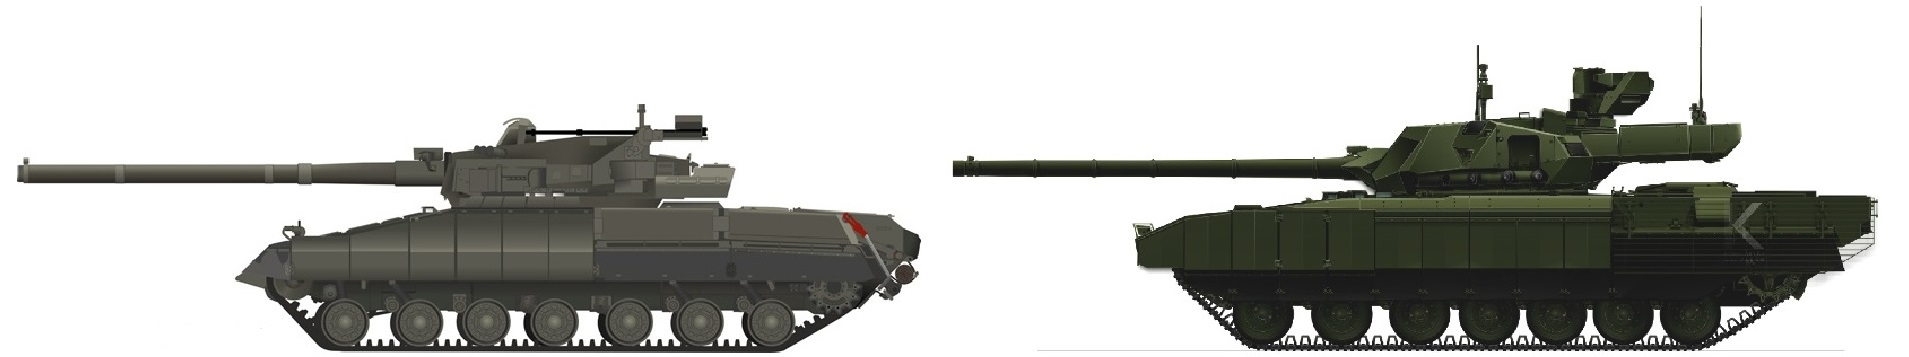 [Official] Armata Discussion thread #4 VCoU8